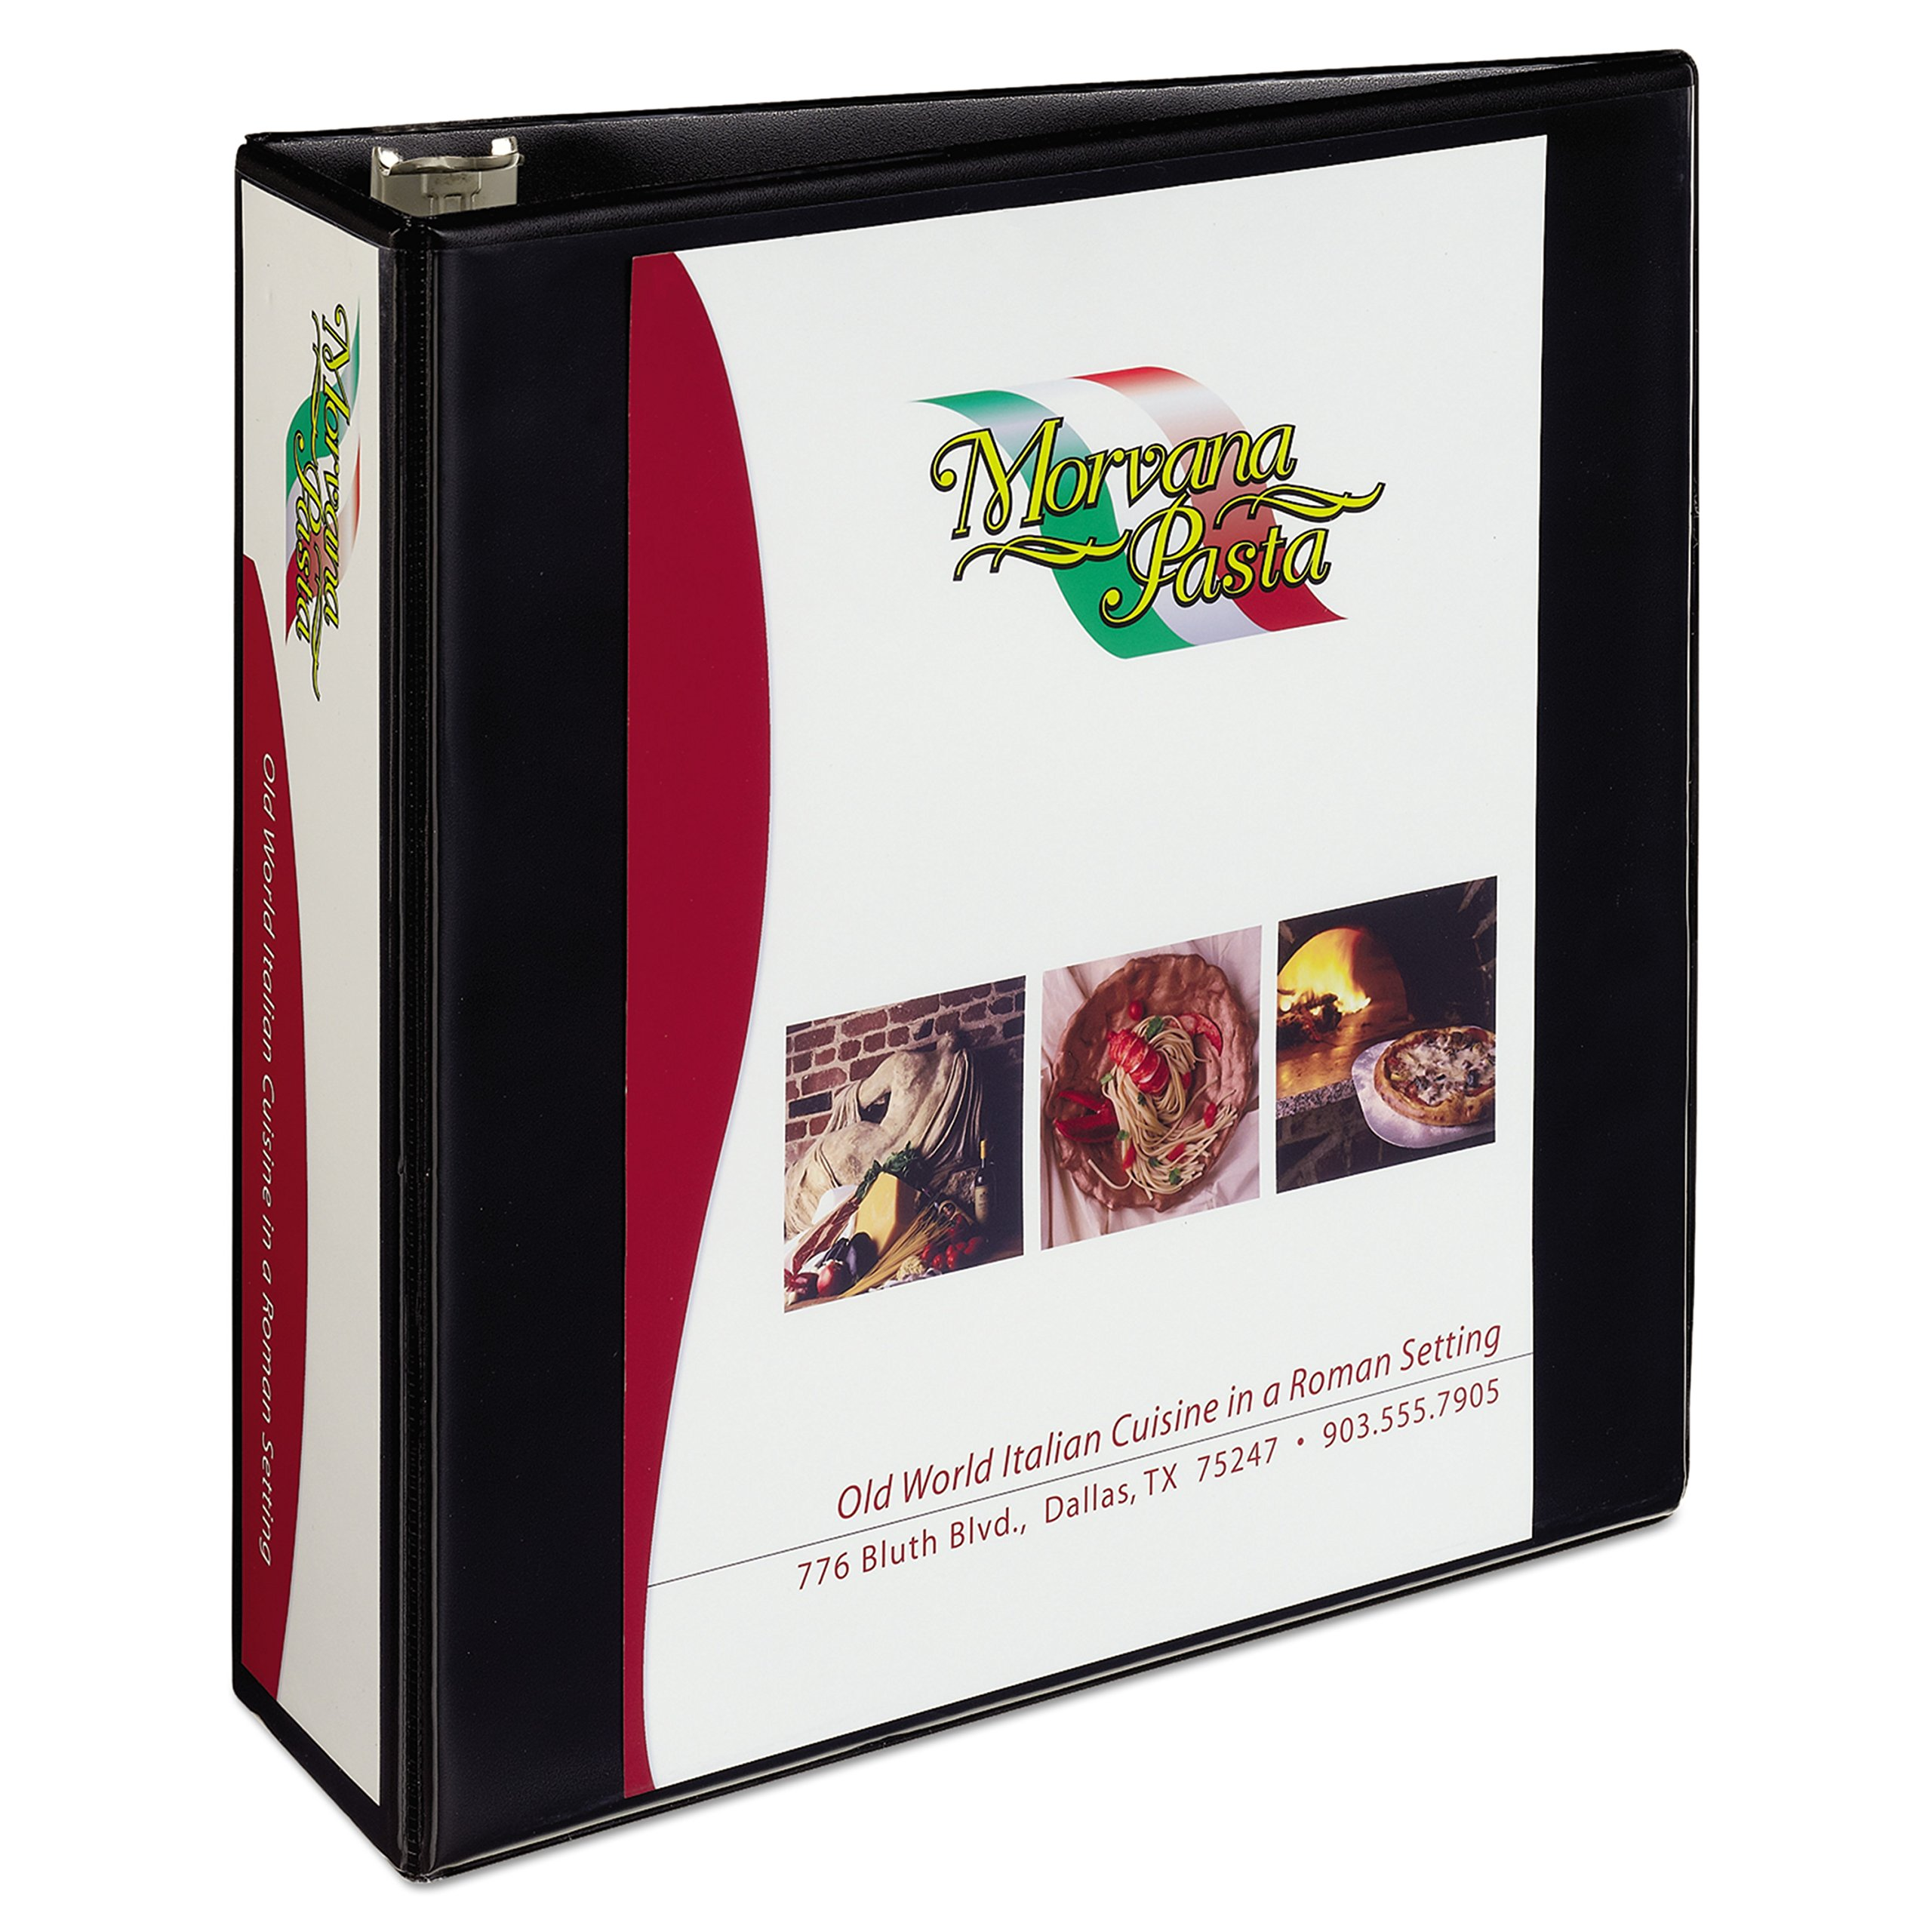 Avery Heavy-Duty View 3 Ring Binder, 3'' One Touch Slant Rings, Holds 8.5'' x 11'' Paper, 1 Black Binder (05600) by AVERY